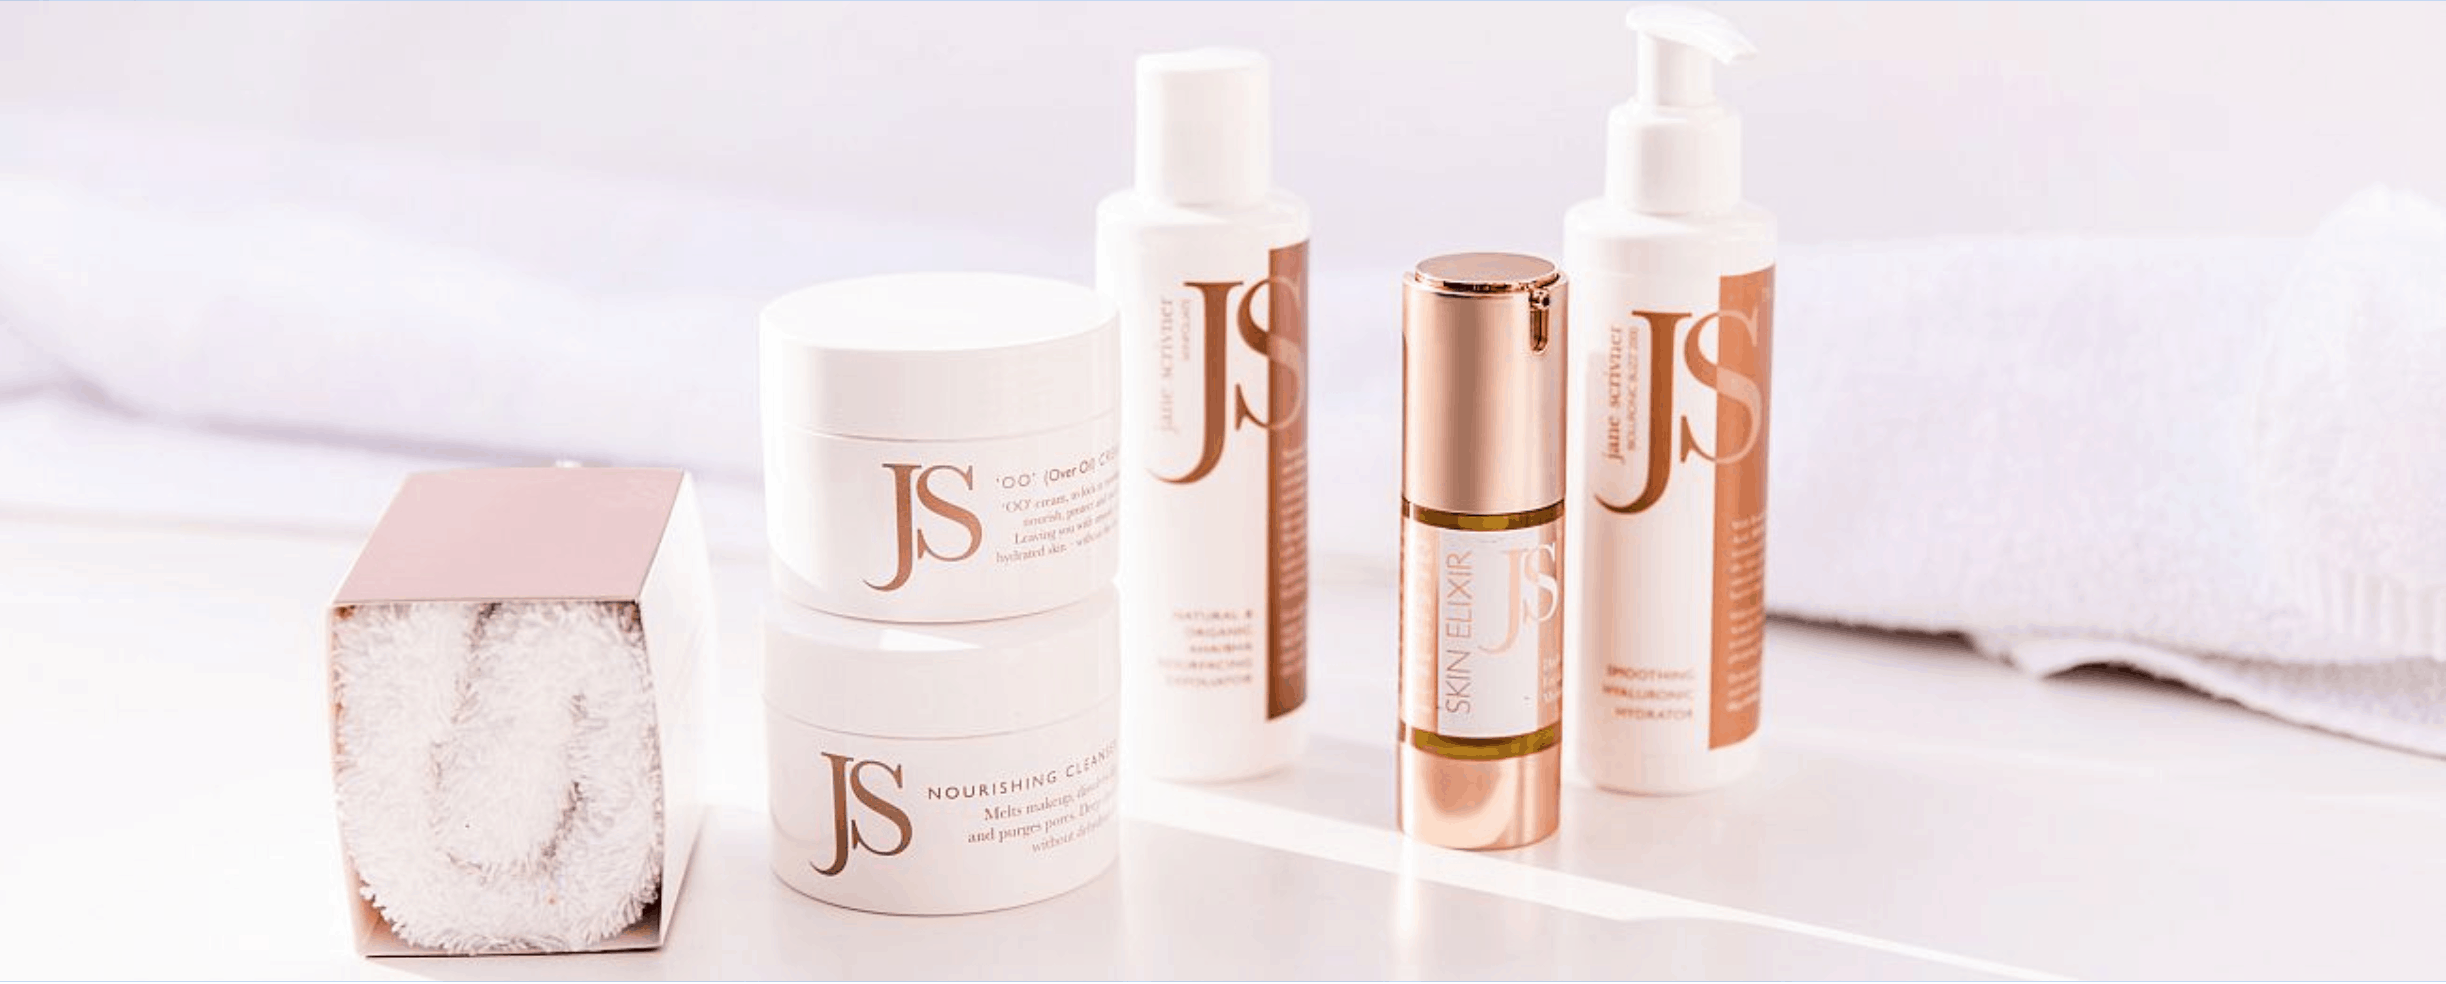 Q&A with skincare expert, Jane Scrivner